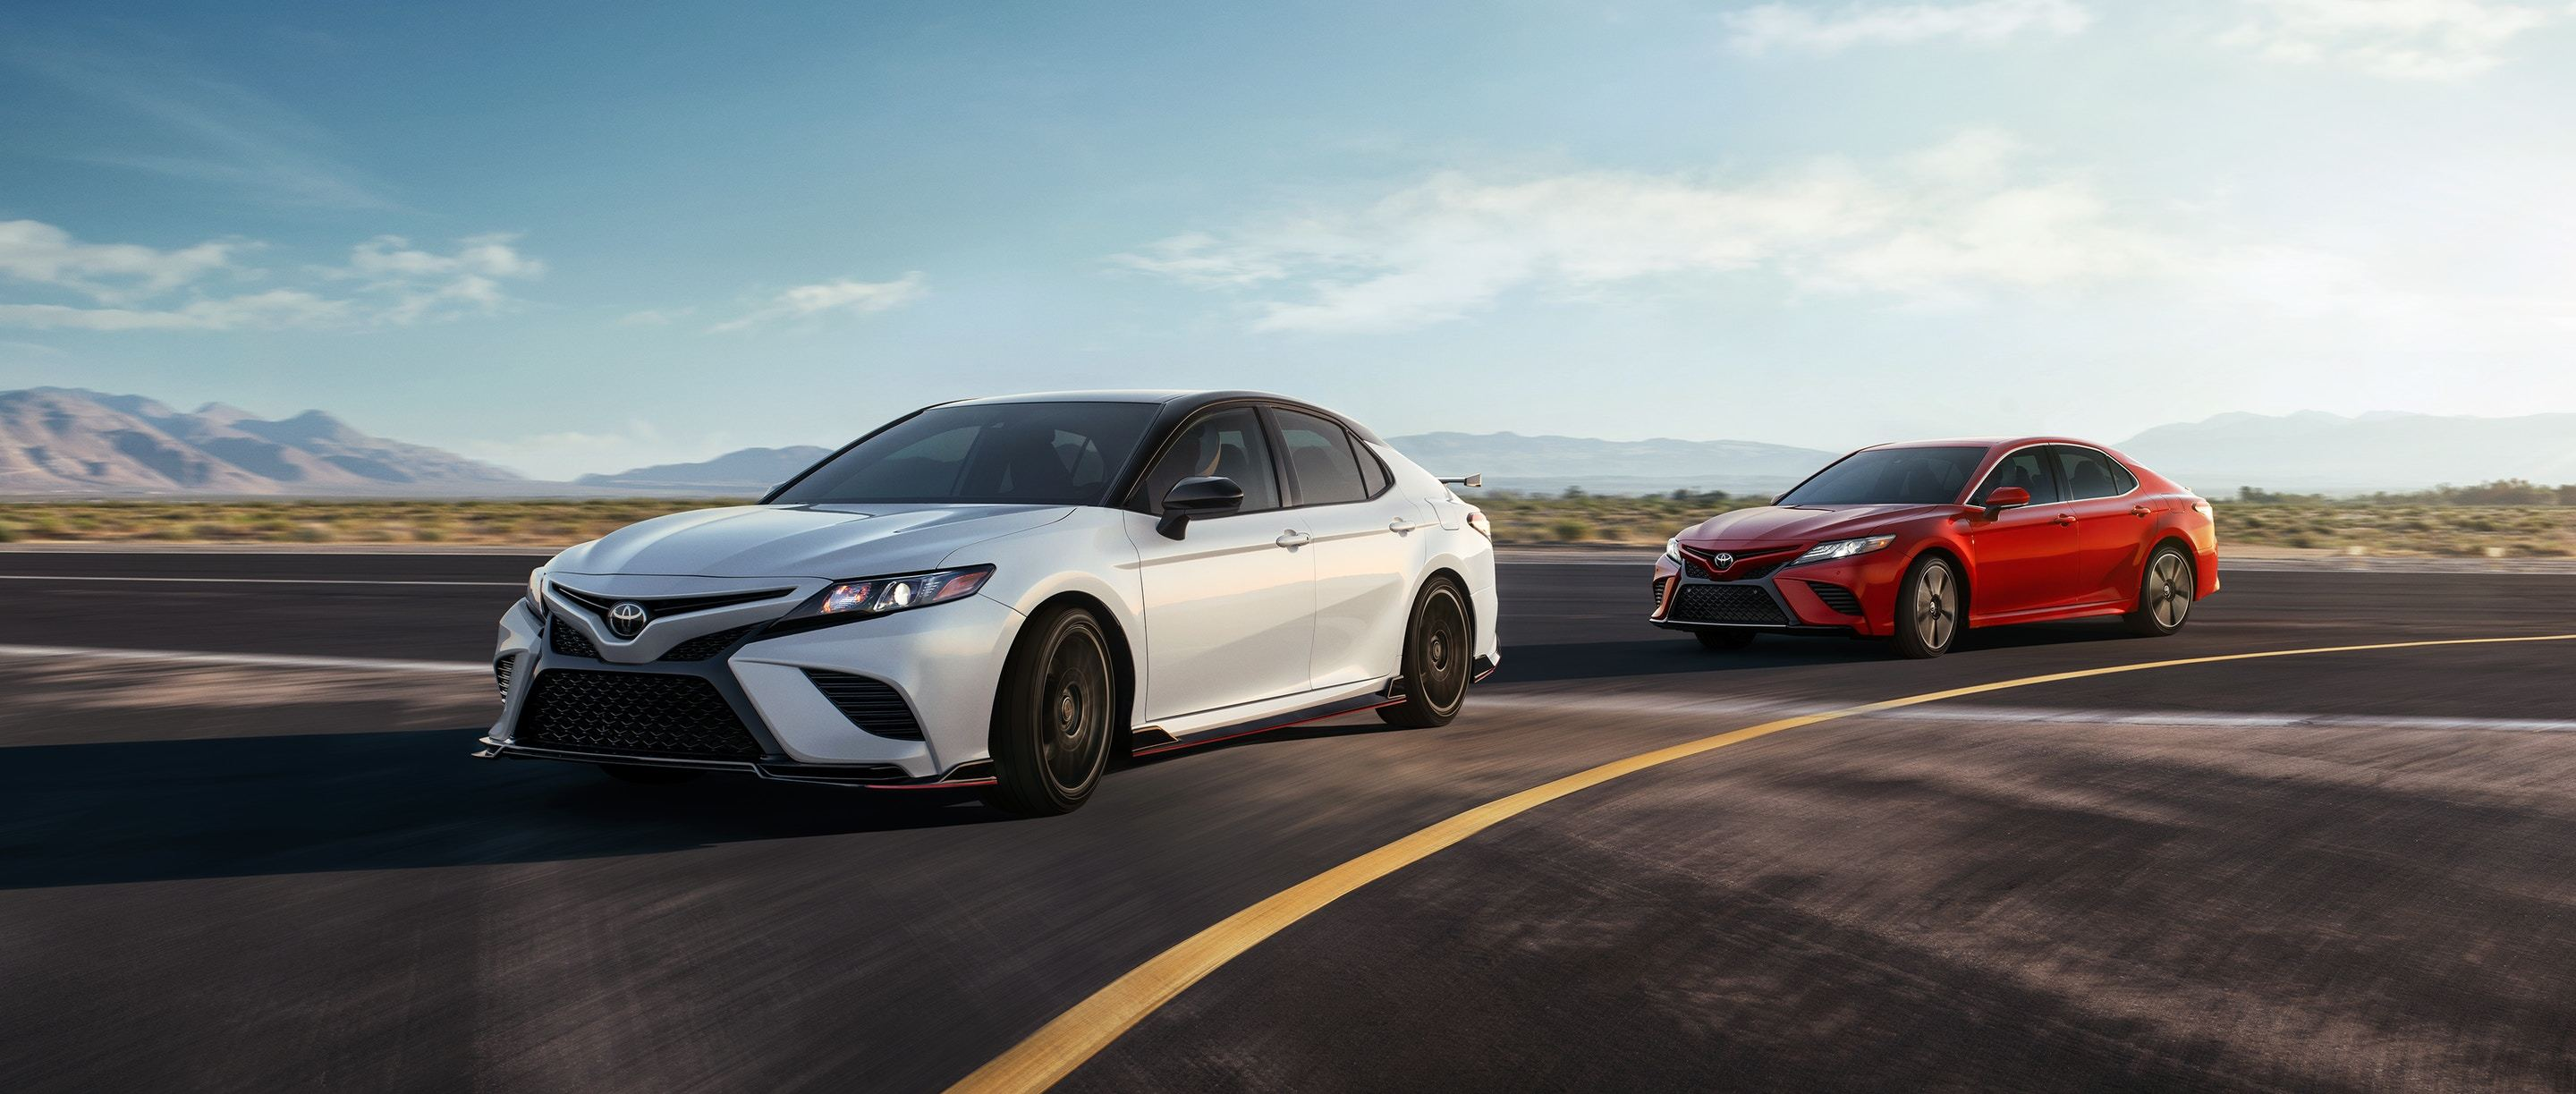 2020 Toyota Camry Leasing near Canton, OH